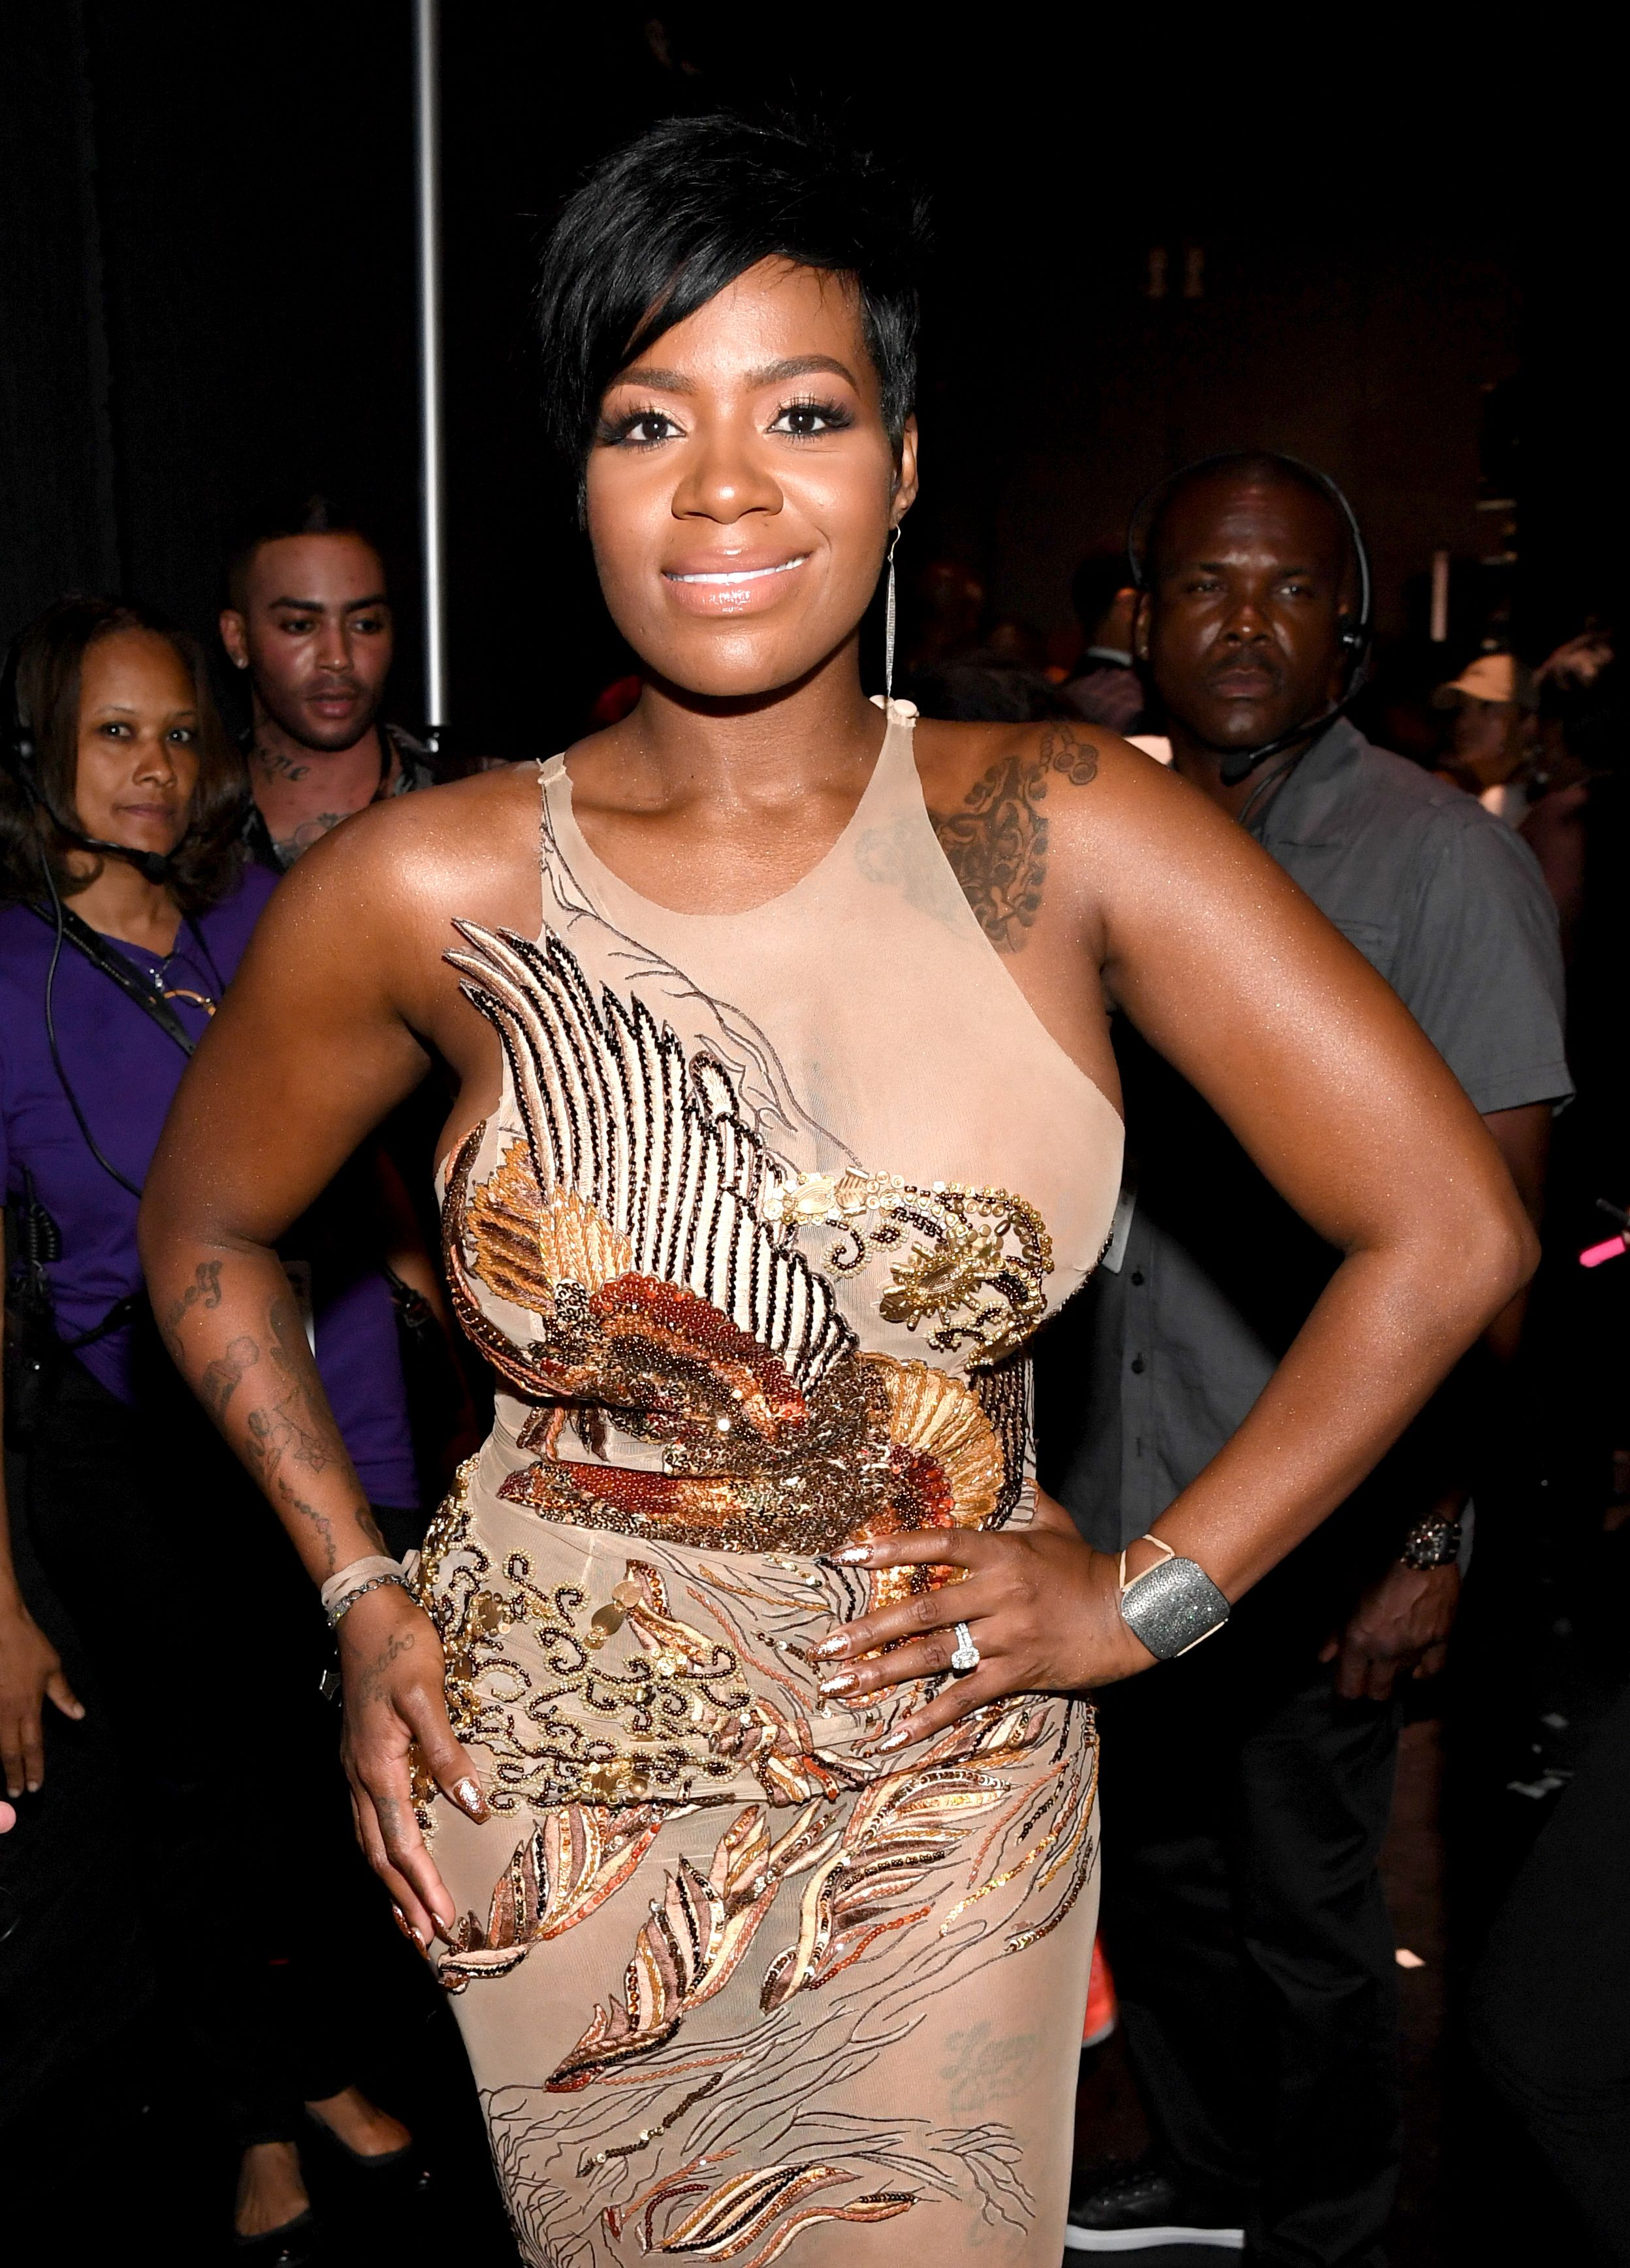 Fantasia Barrino during the 2016 BET Awards at the Microsoft Theater on June 26, 2016 in Los Angeles, California. | Source: Getty Images